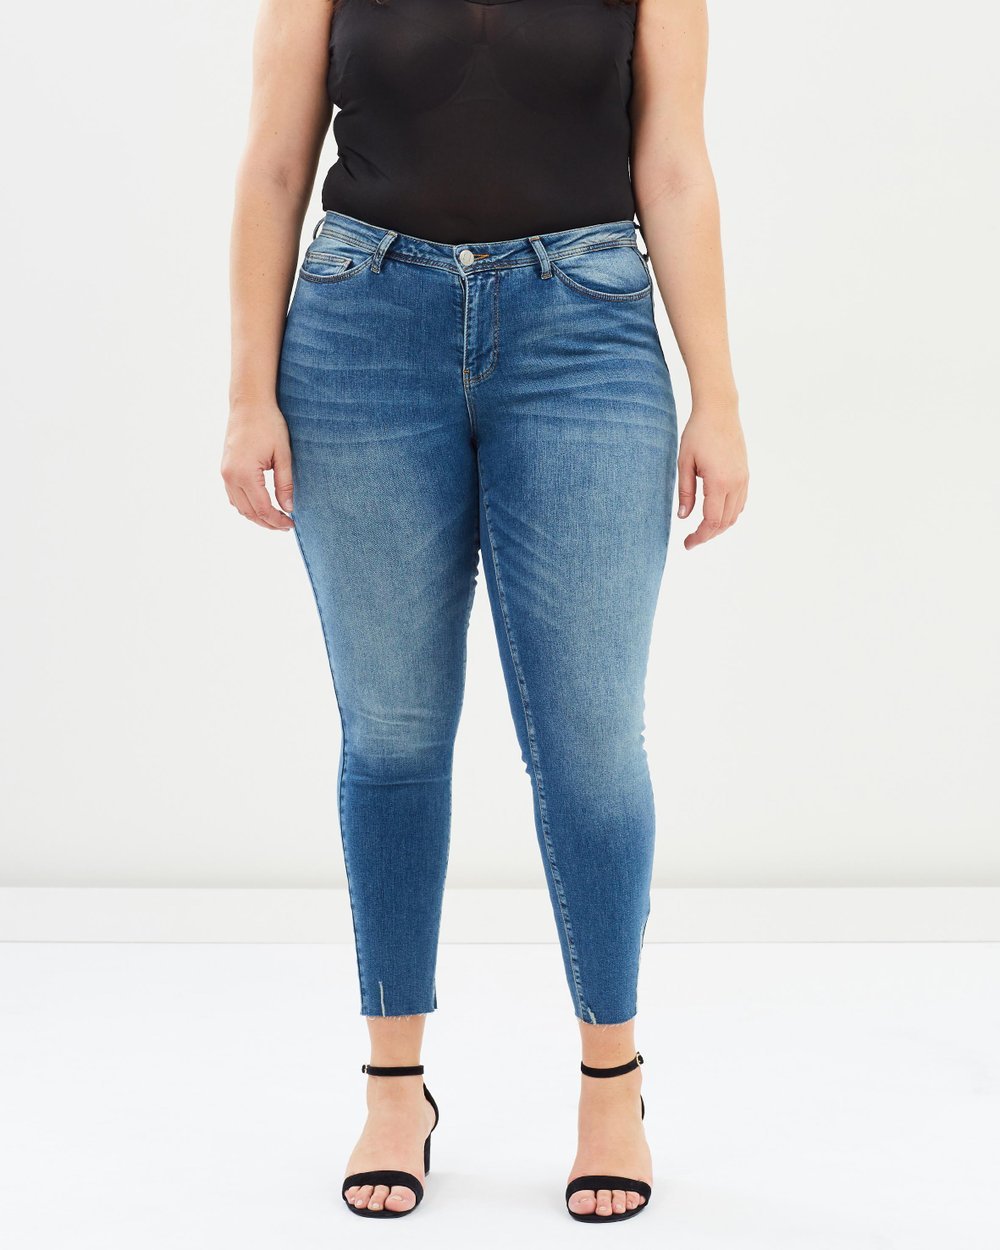 Five Pocket Normal Waist Slim Ankle Jeans by JUNAROSE Online   THE ICONIC    Australia 1385862bb7